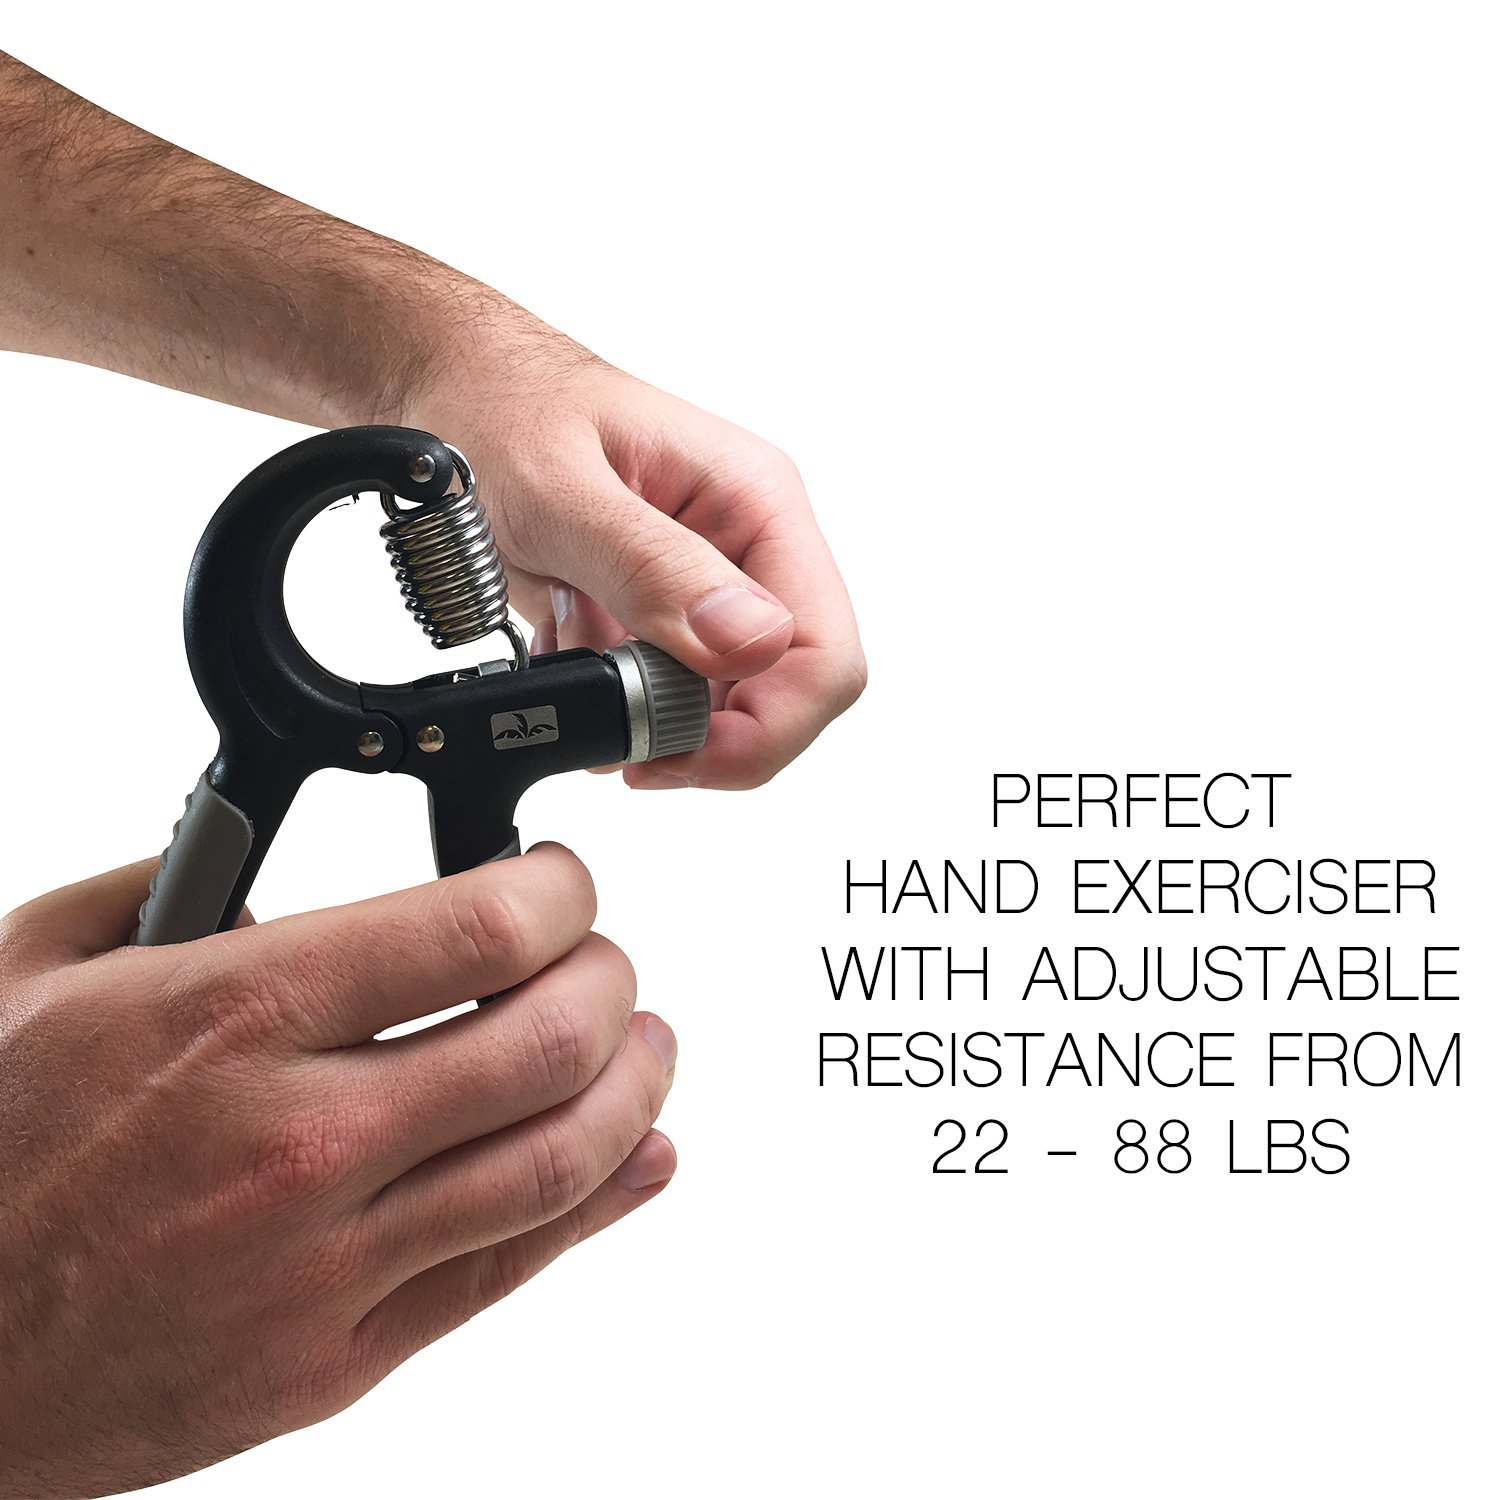 Ergonomic Design FITS All Hand Sizes Comfortably.Great for Rehabilitation Purposes Cabana Sports Black and Grey Adjustable Hand Grip